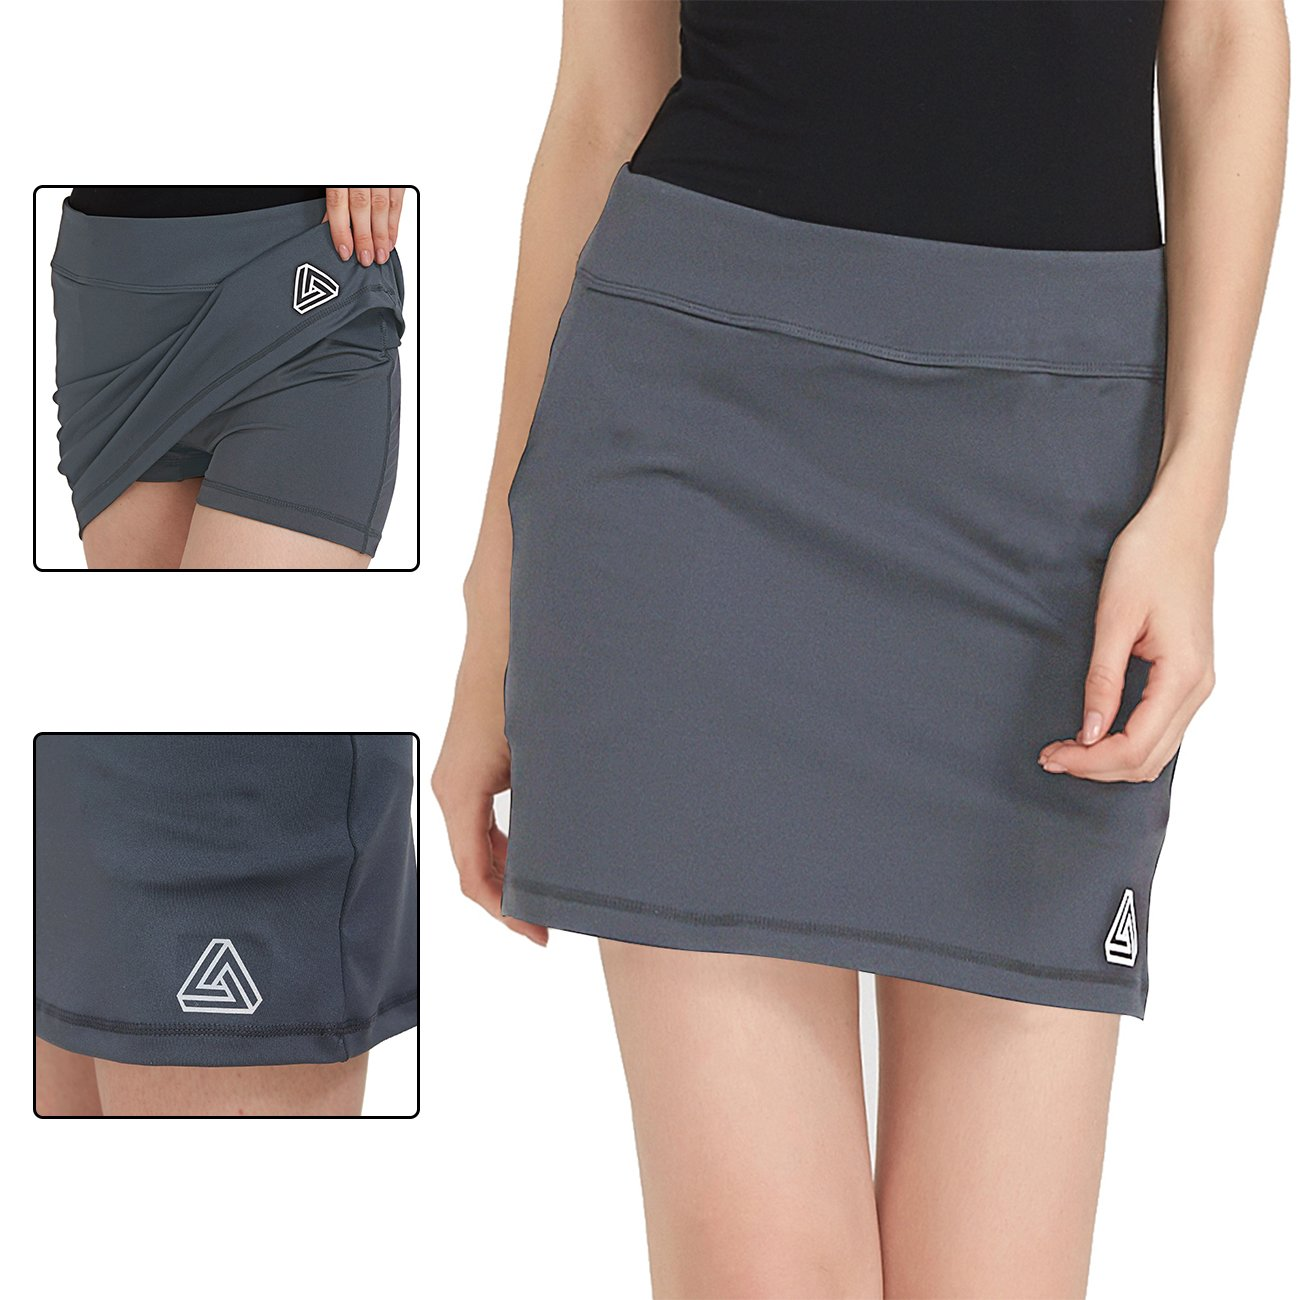 DOMICARE Women Active Athletic Skorts with Pockets - Lightweight Quick Dry Skirt with Short for Workout Sports, XL, Grey